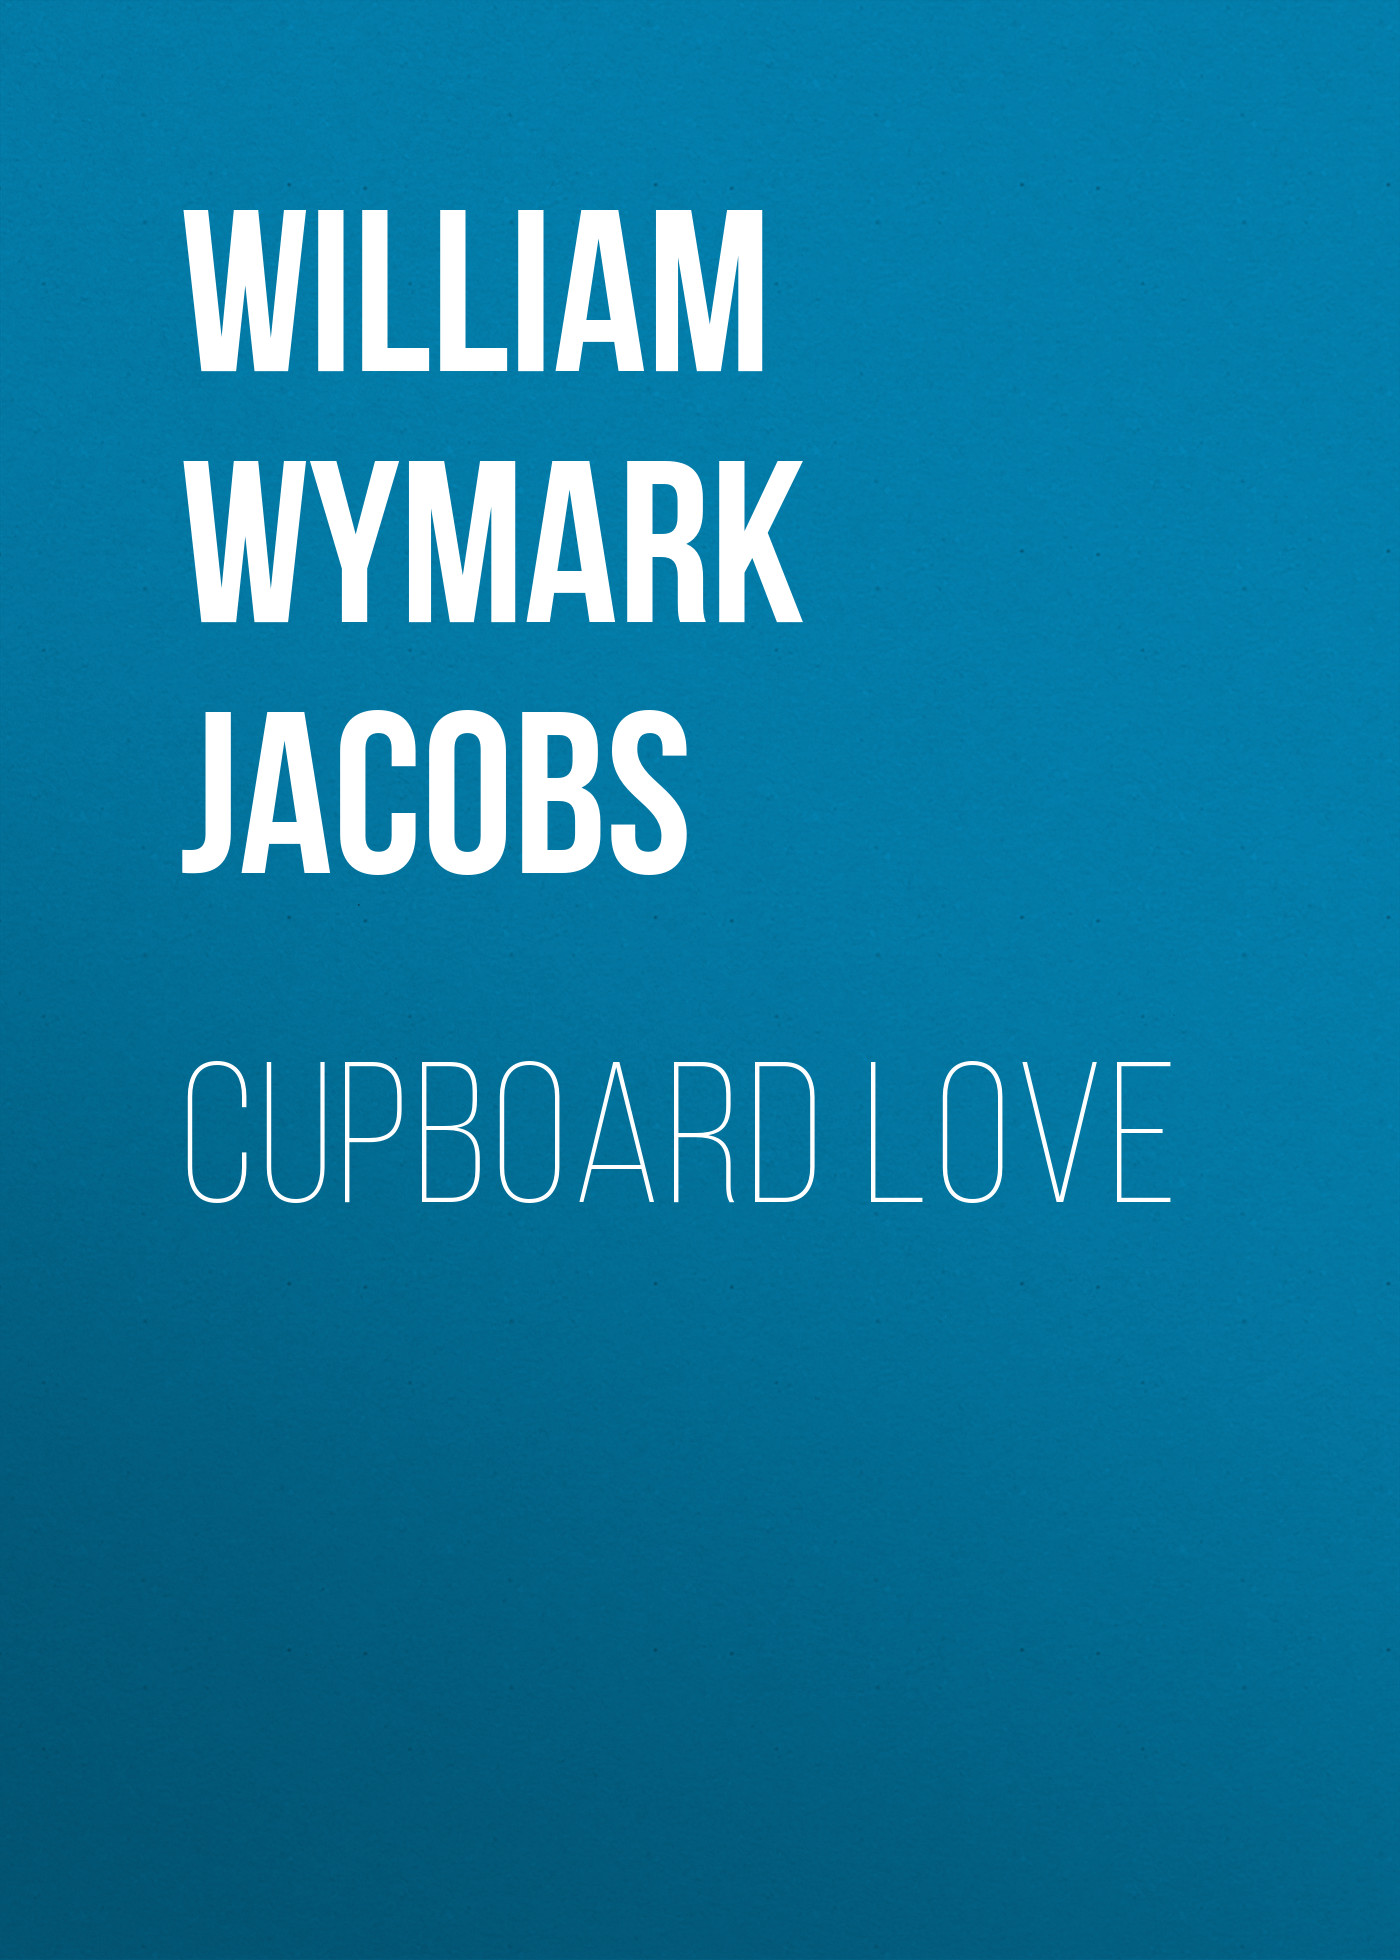 лучшая цена William Wymark Jacobs Cupboard Love